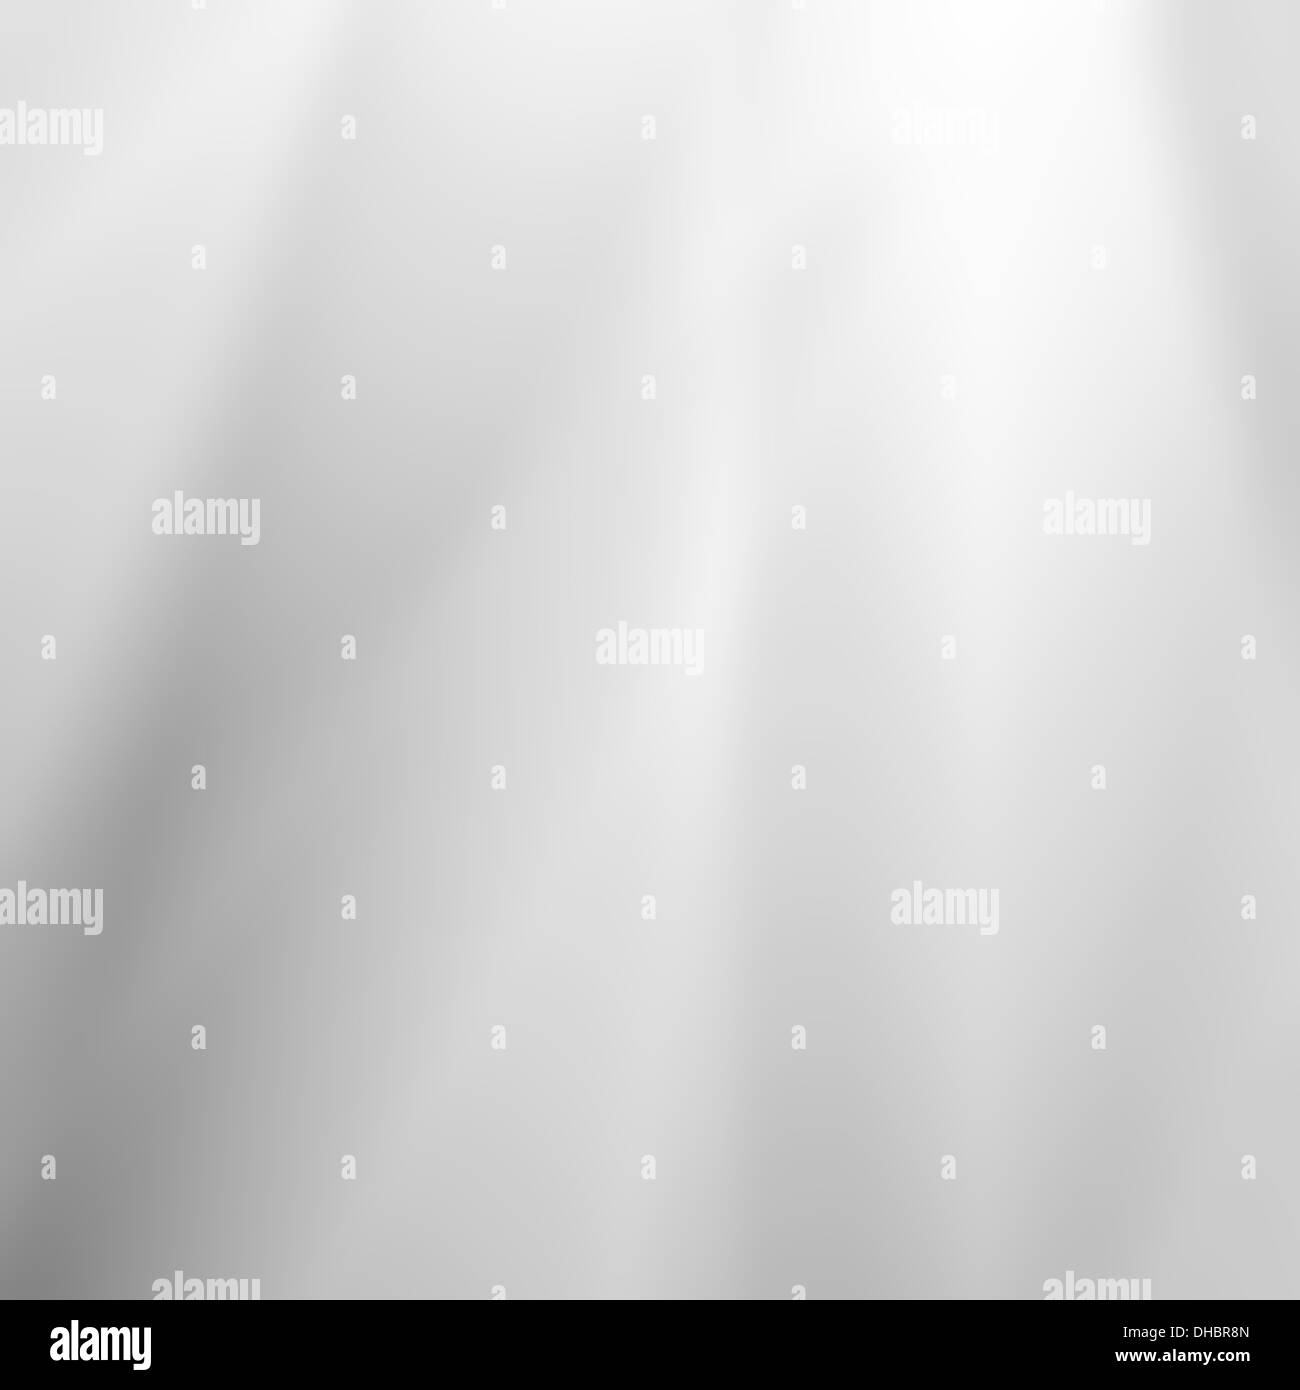 Silk white background abstract pattern design - Stock Image